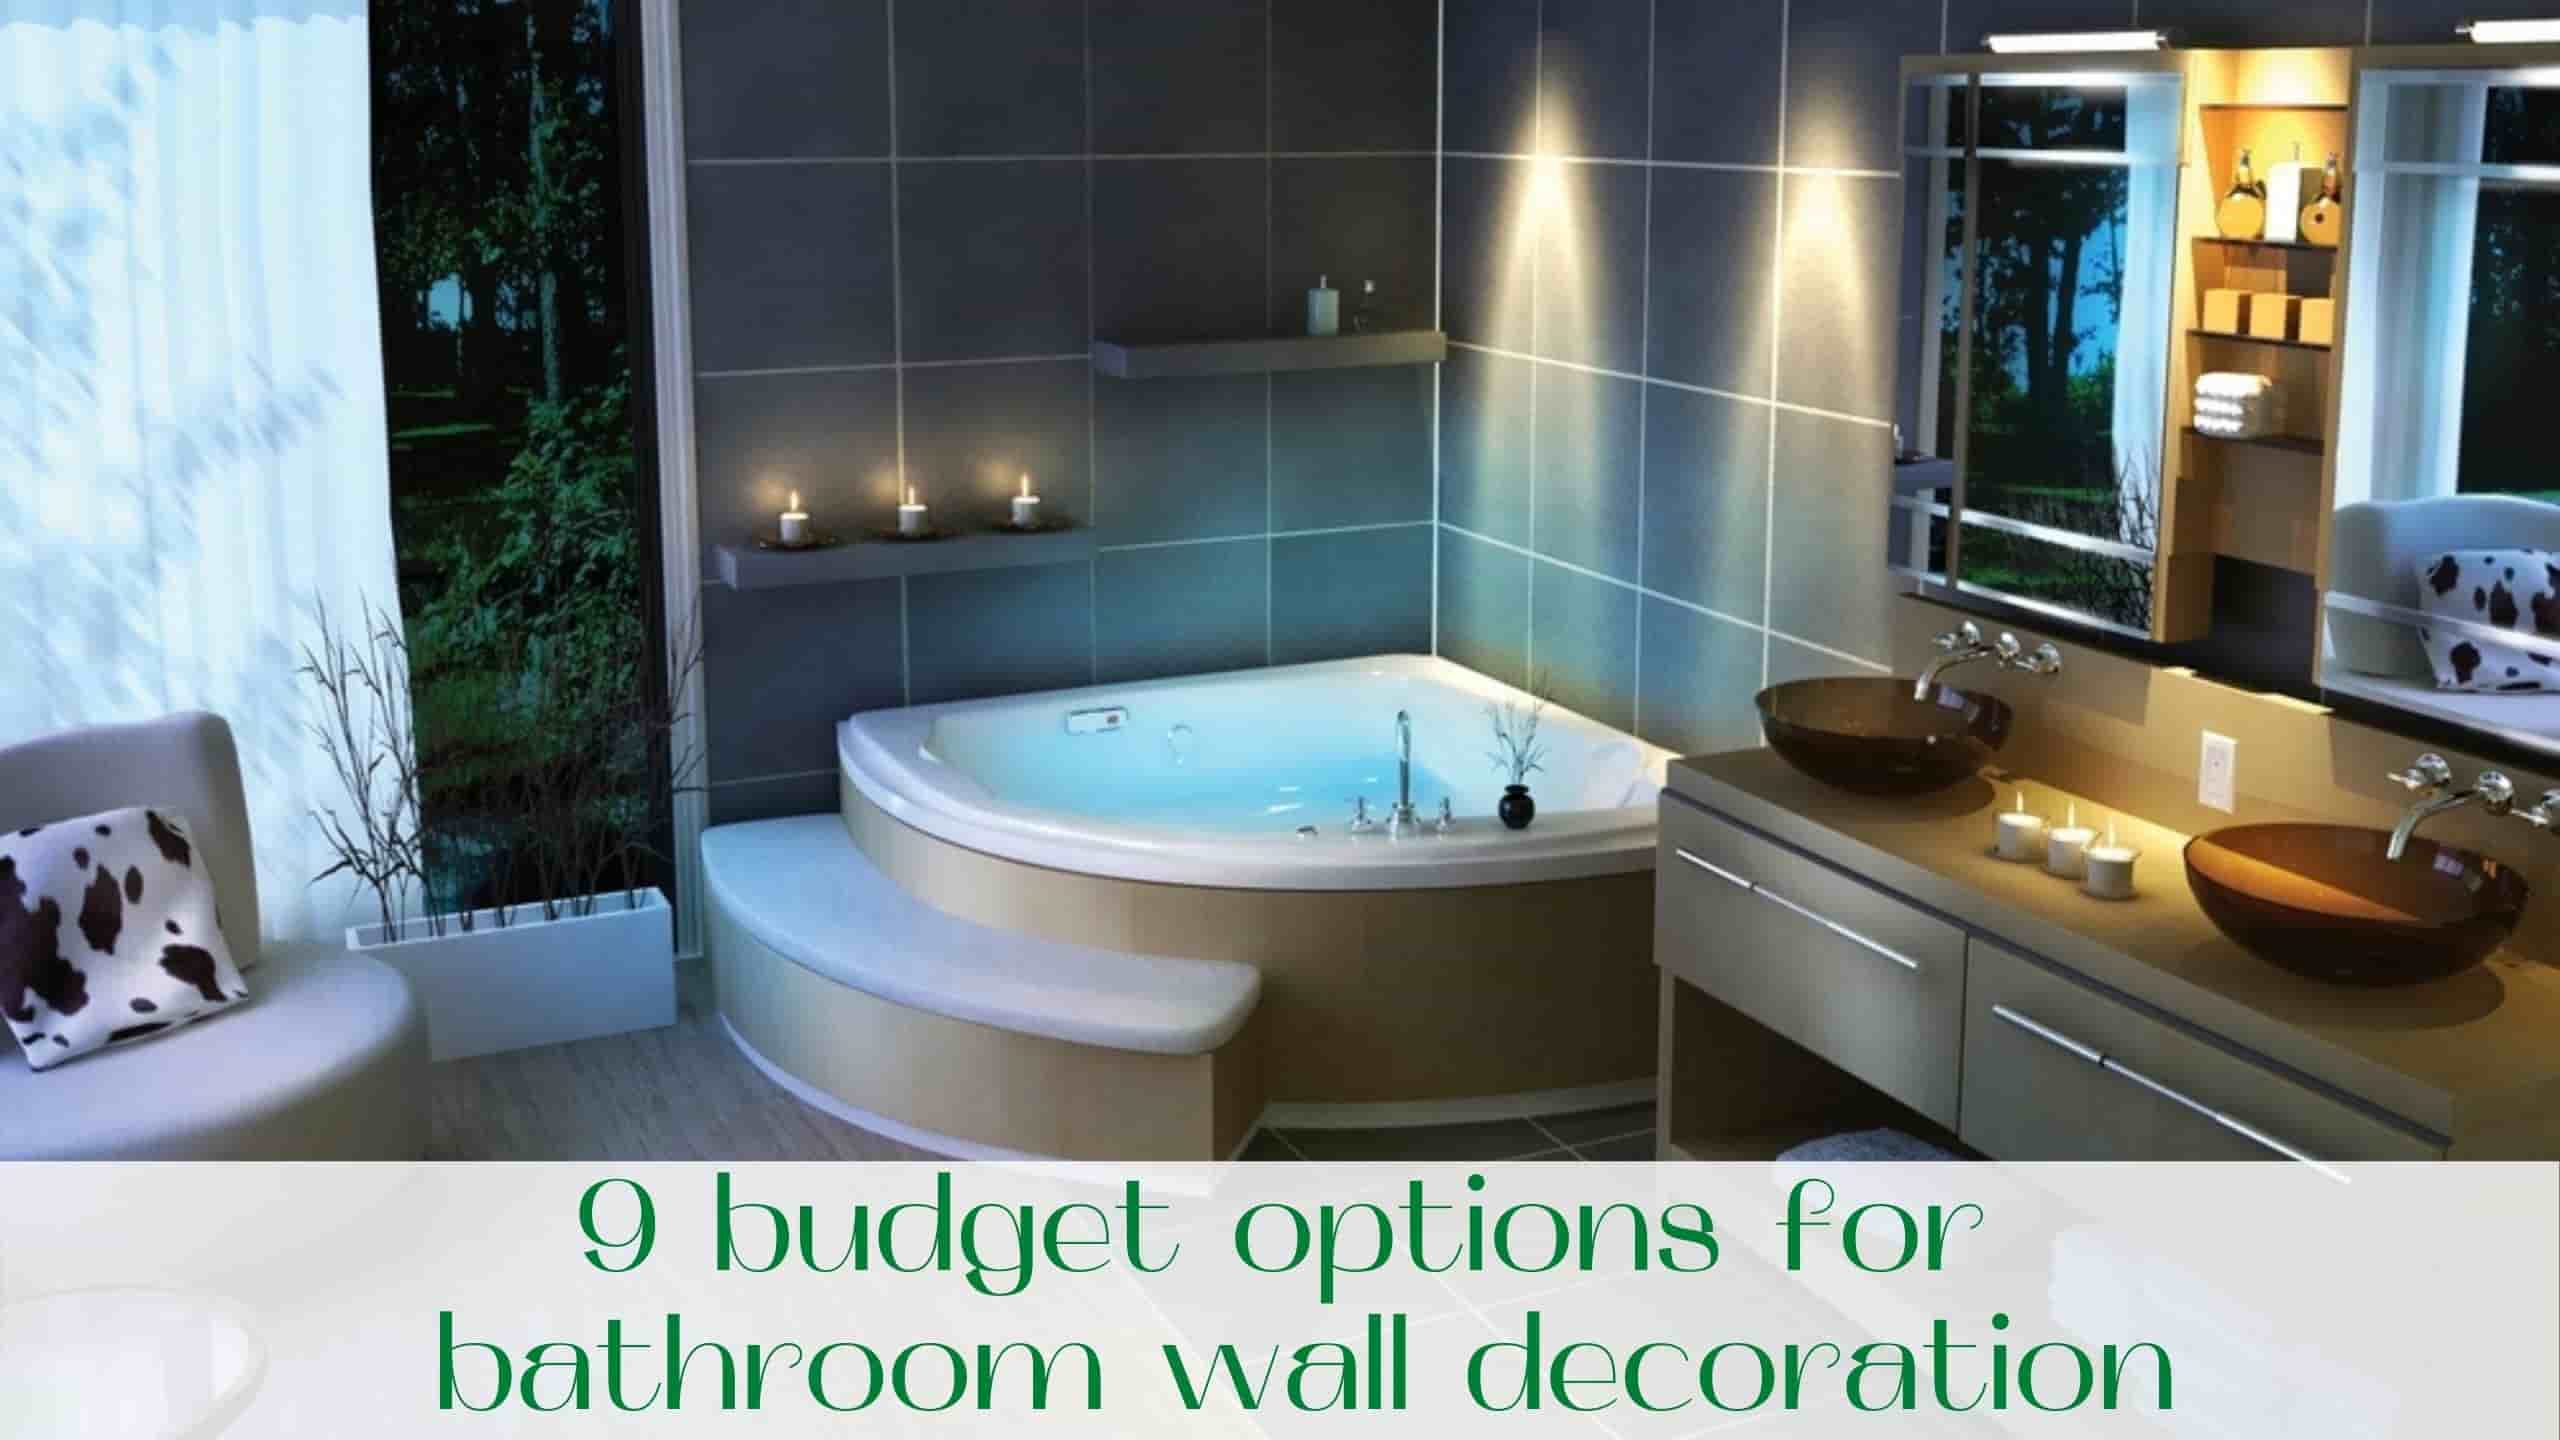 image-9-budget-options-for-bathroom-wall-decoration